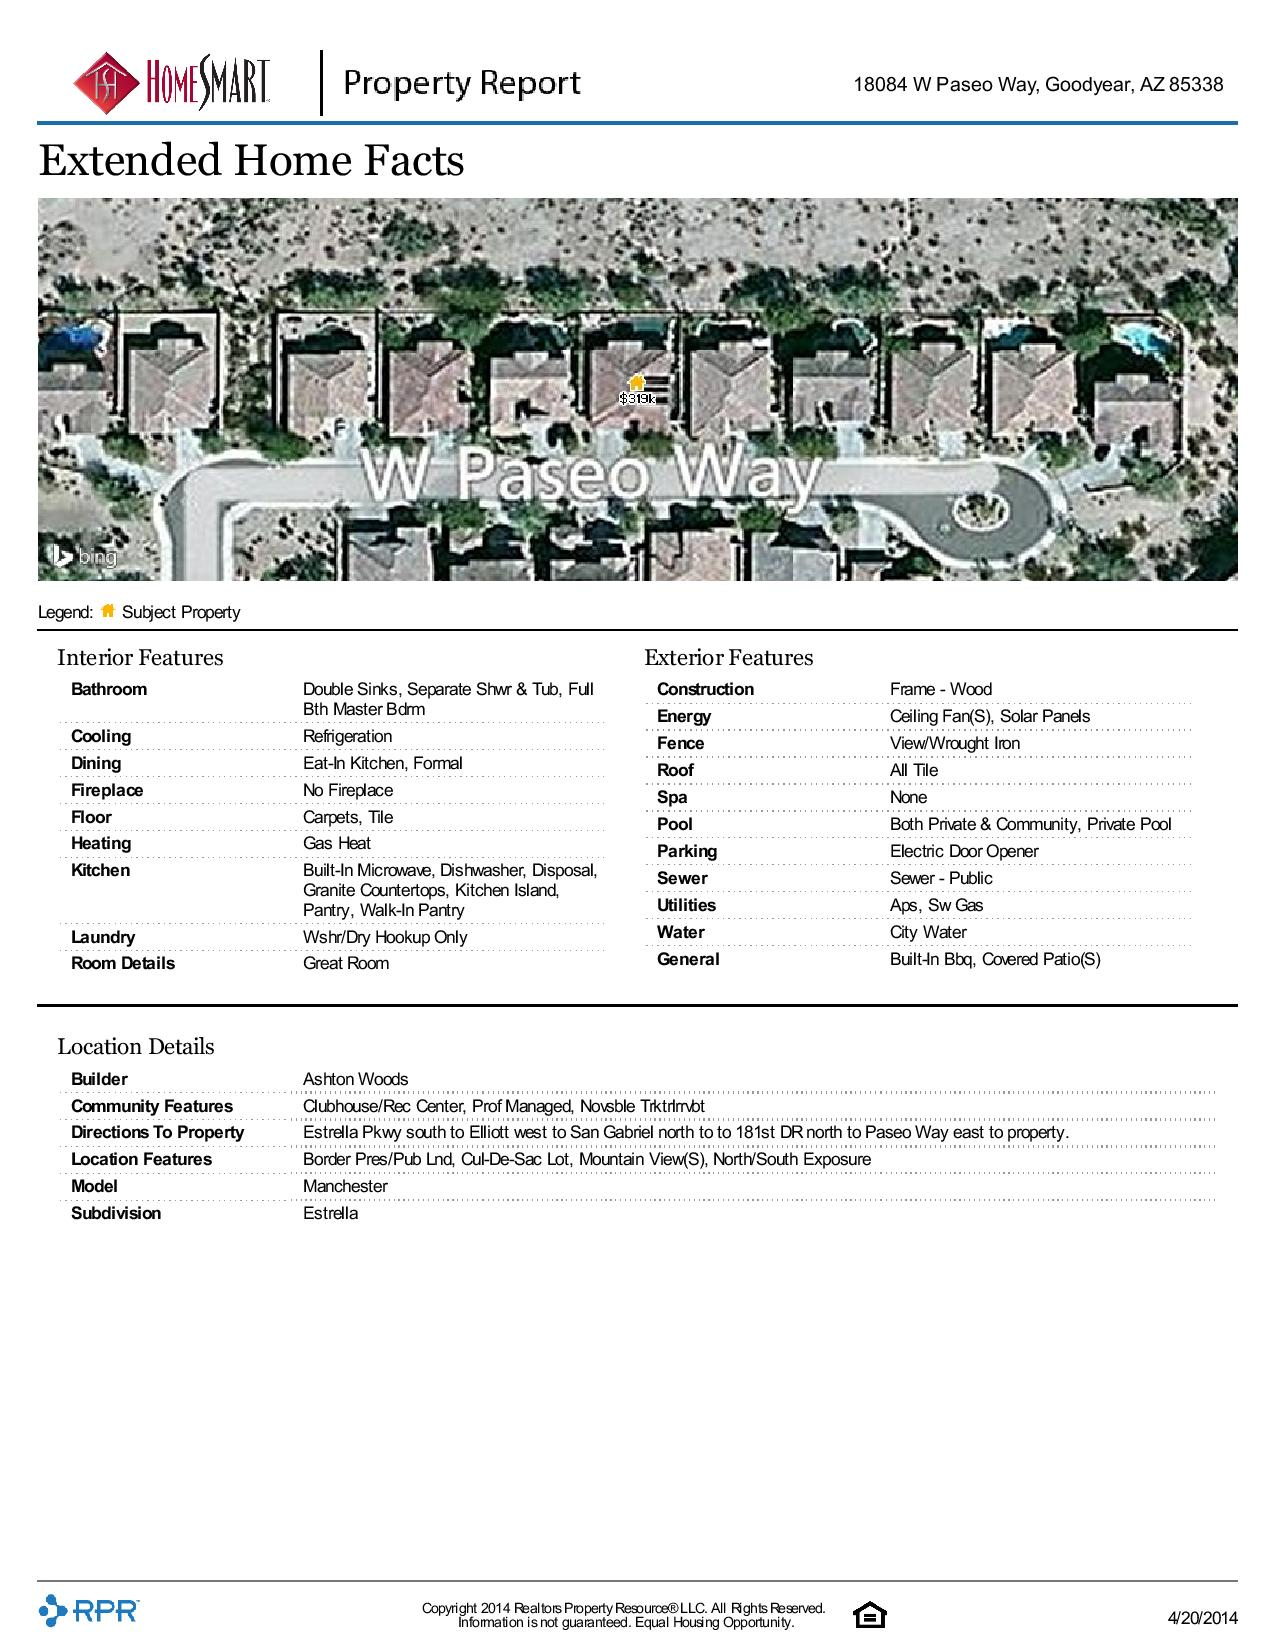 18084-W-Paseo-Way-Goodyear-AZ-85338-page-004